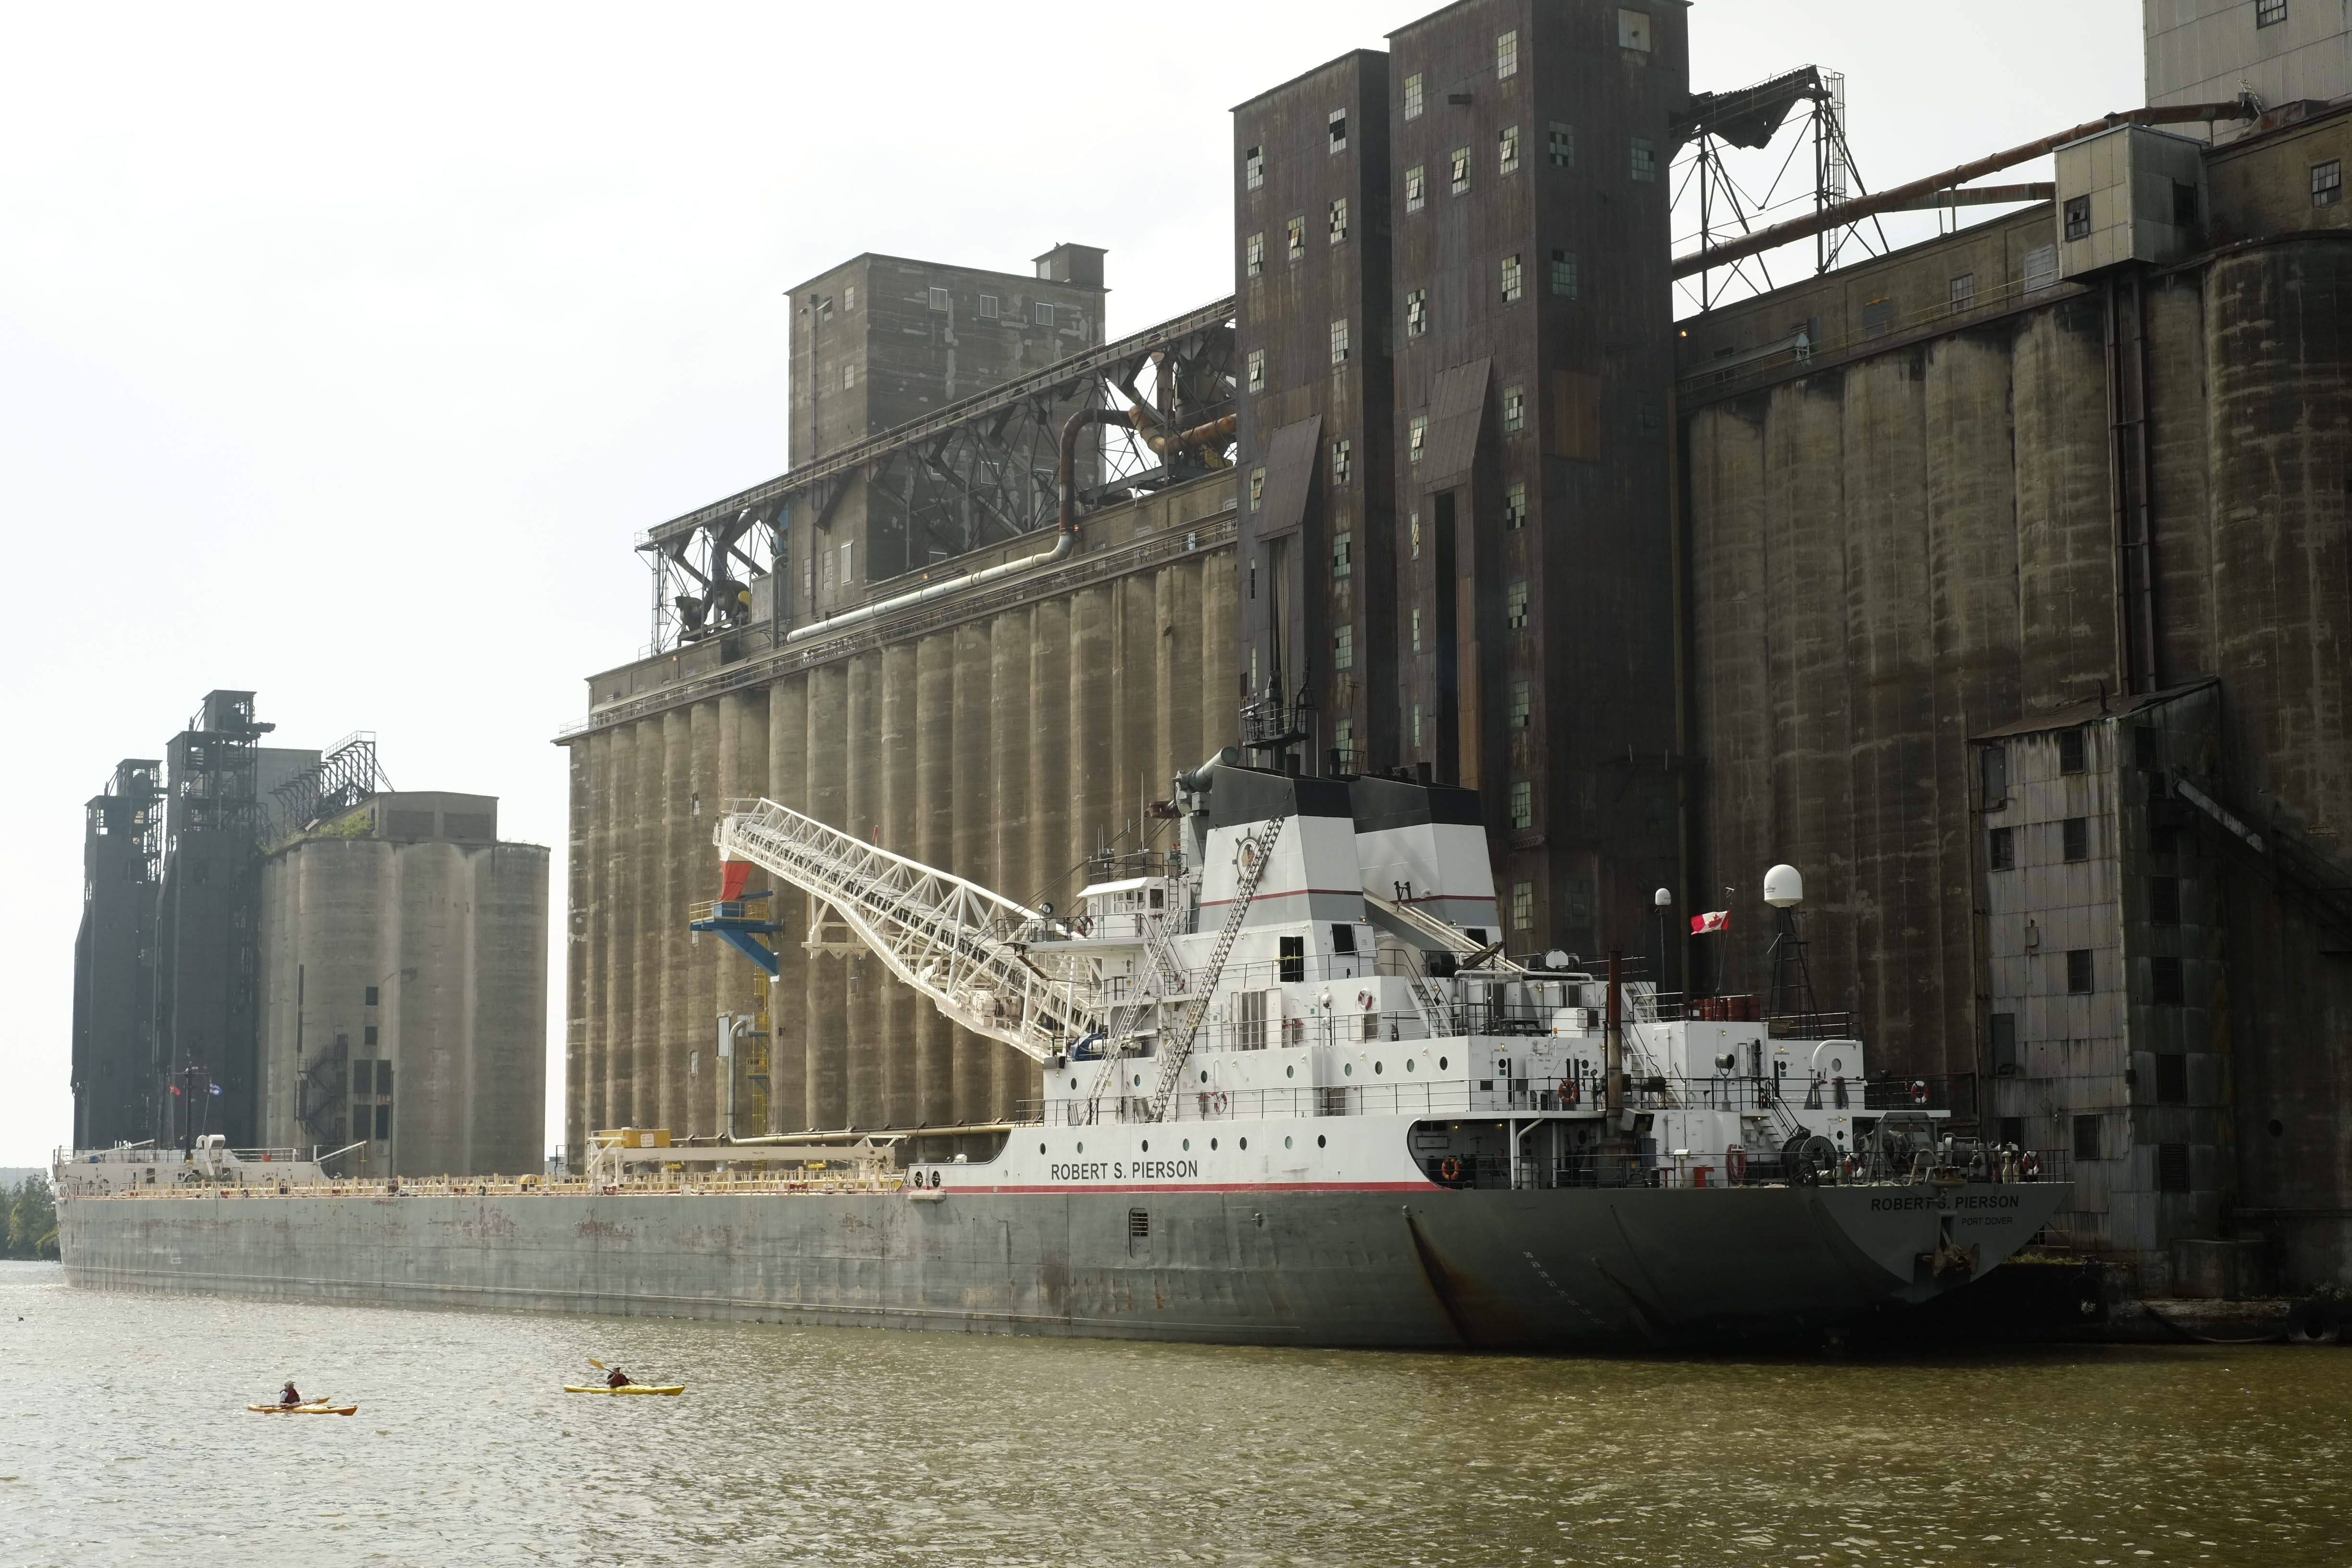 Kayakers pass the freighter Robert S. Pierson as it unloads grain Tuesday. The freighter arrived in Buffalo on Friday but had to wait until Tuesday to deliver its cargo because of the broken Ohio Street lift bridge.  See more photos at BuffaloNews.com/galleries.